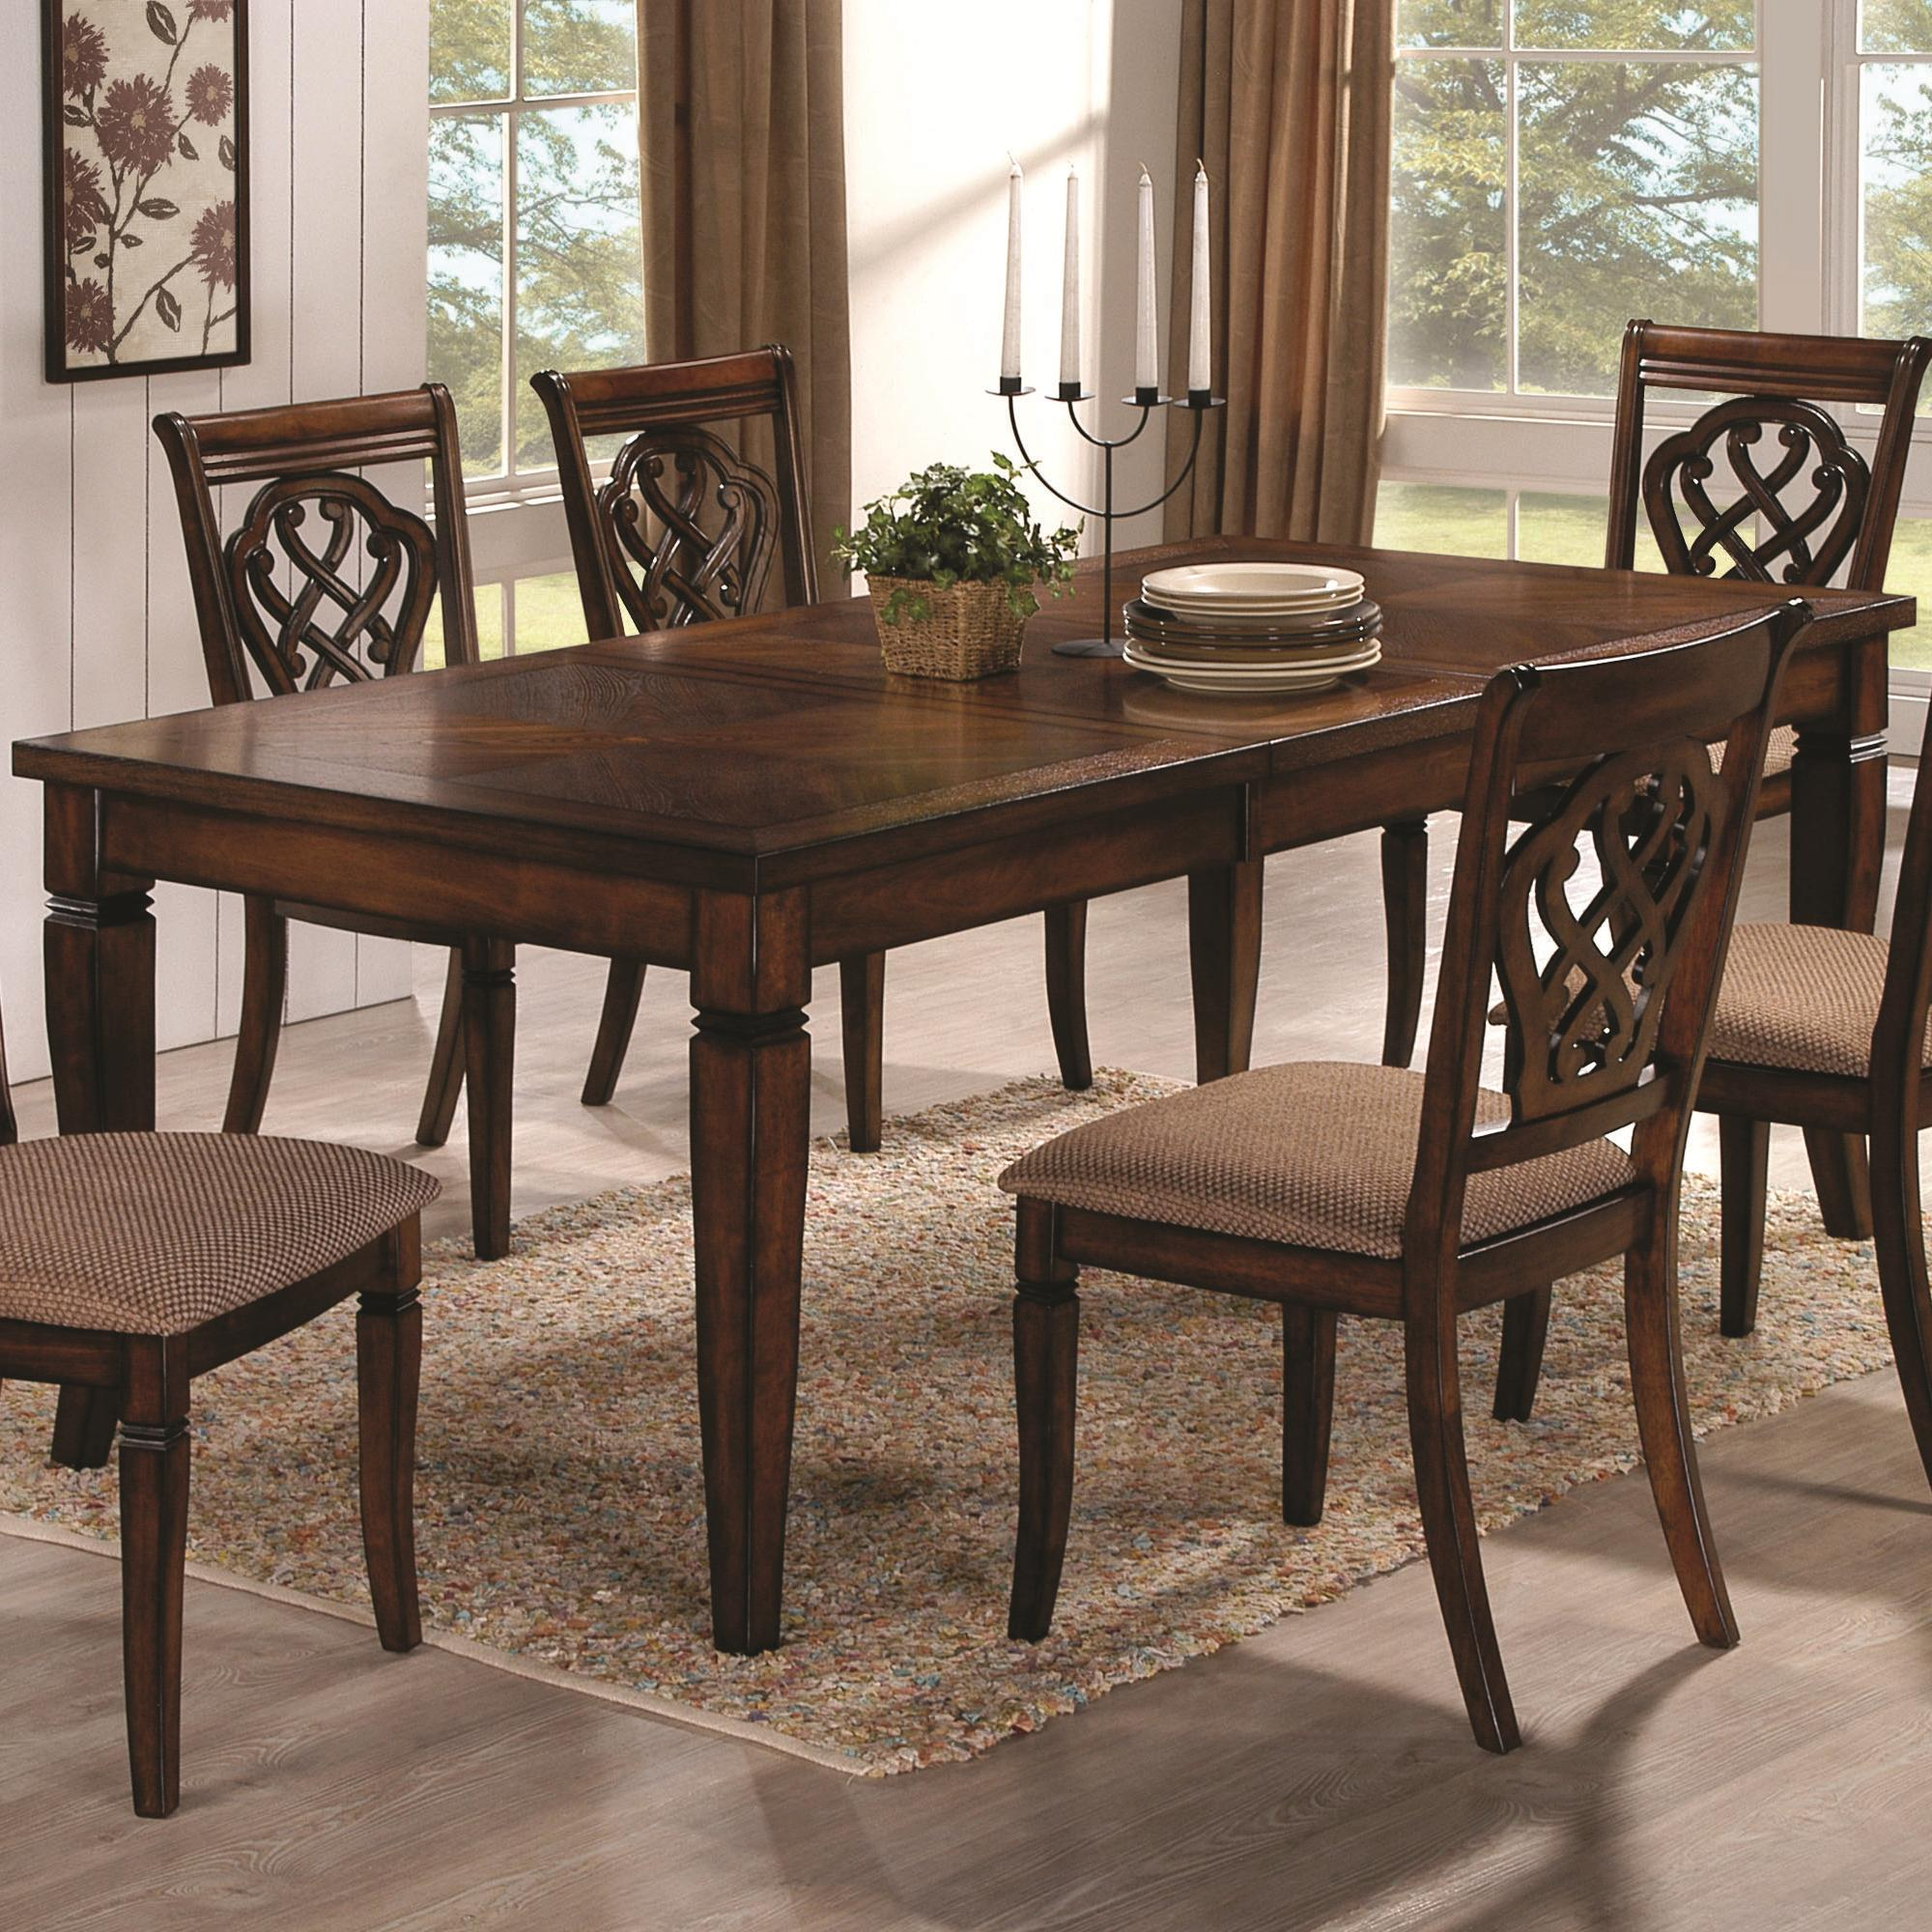 Coaster Dining 10339 Dining Table - Item Number: 103391